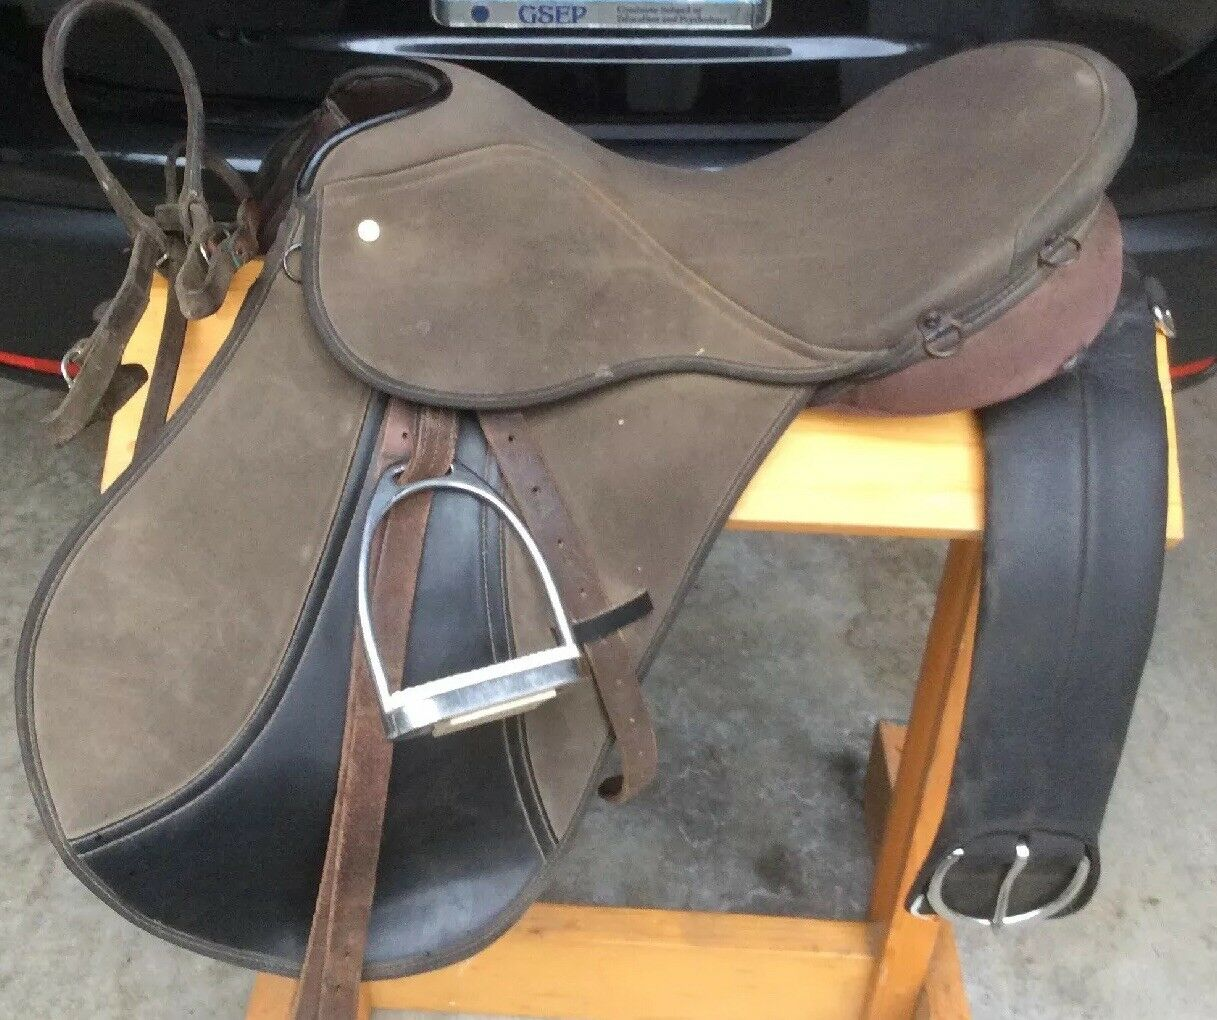 English Saddle, Roughout Seat, Irons, Bridle, Girth